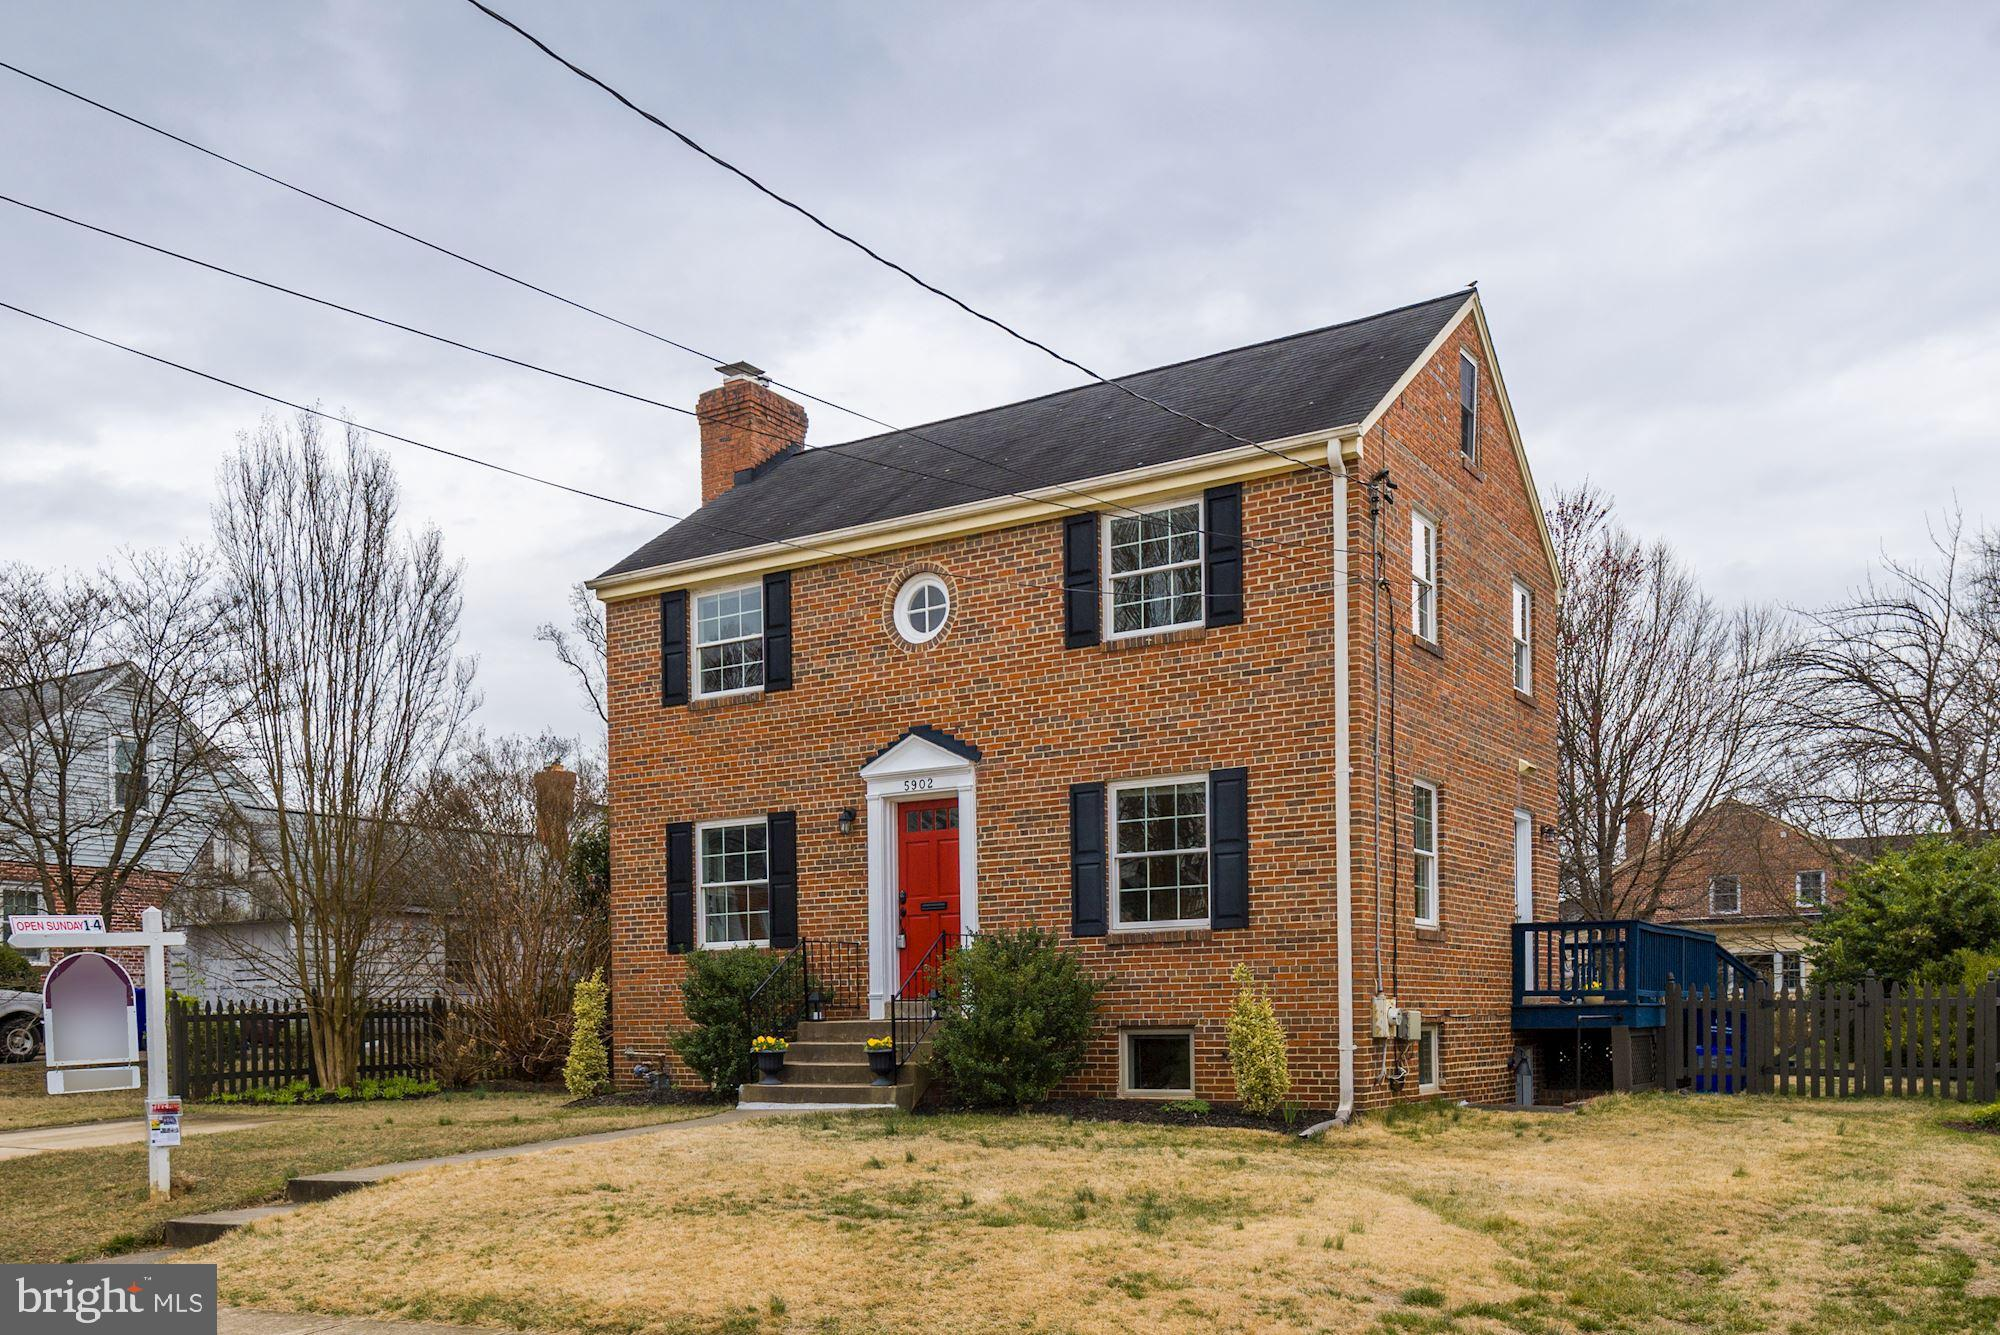 Wonderful Wyngate- an idyllic neighborhood nestled in the heart of Bethesda!  Ideally located Colonial near major commuter routes and highly rated schools.  You don't have to do anything to this well-maintained and move-in ready home!!  The main level has great circular flow with a large living room, formal dining room, kitchen with new granite counter tops and appliances, and a sun-drenched family room with south facing windows and access to the fully landscaped, fenced backyard and wraparound deck.  Fun neighborhood with an annual Fourth of July parade with games, music and decorated bikes, trikes and strollers.  Come see this gorgeous home!!